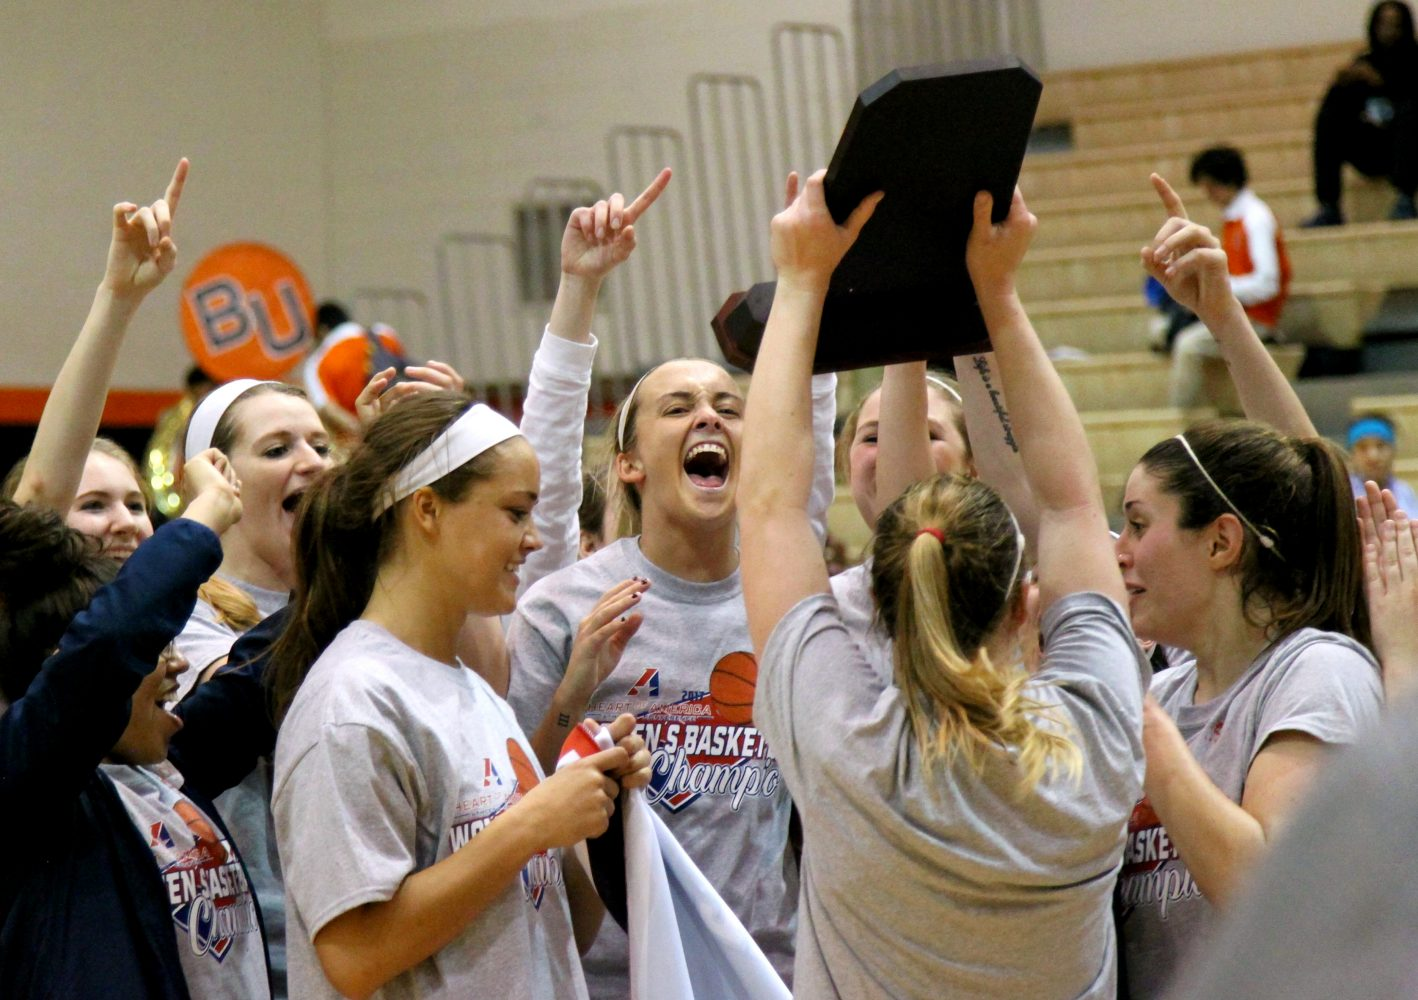 The womens basketball team celebrates winning the Heart of America Athletic Conference Tournament for the first time in program history. The team added this achievement to the list for another history-making season. Photo by Chad Phillips.